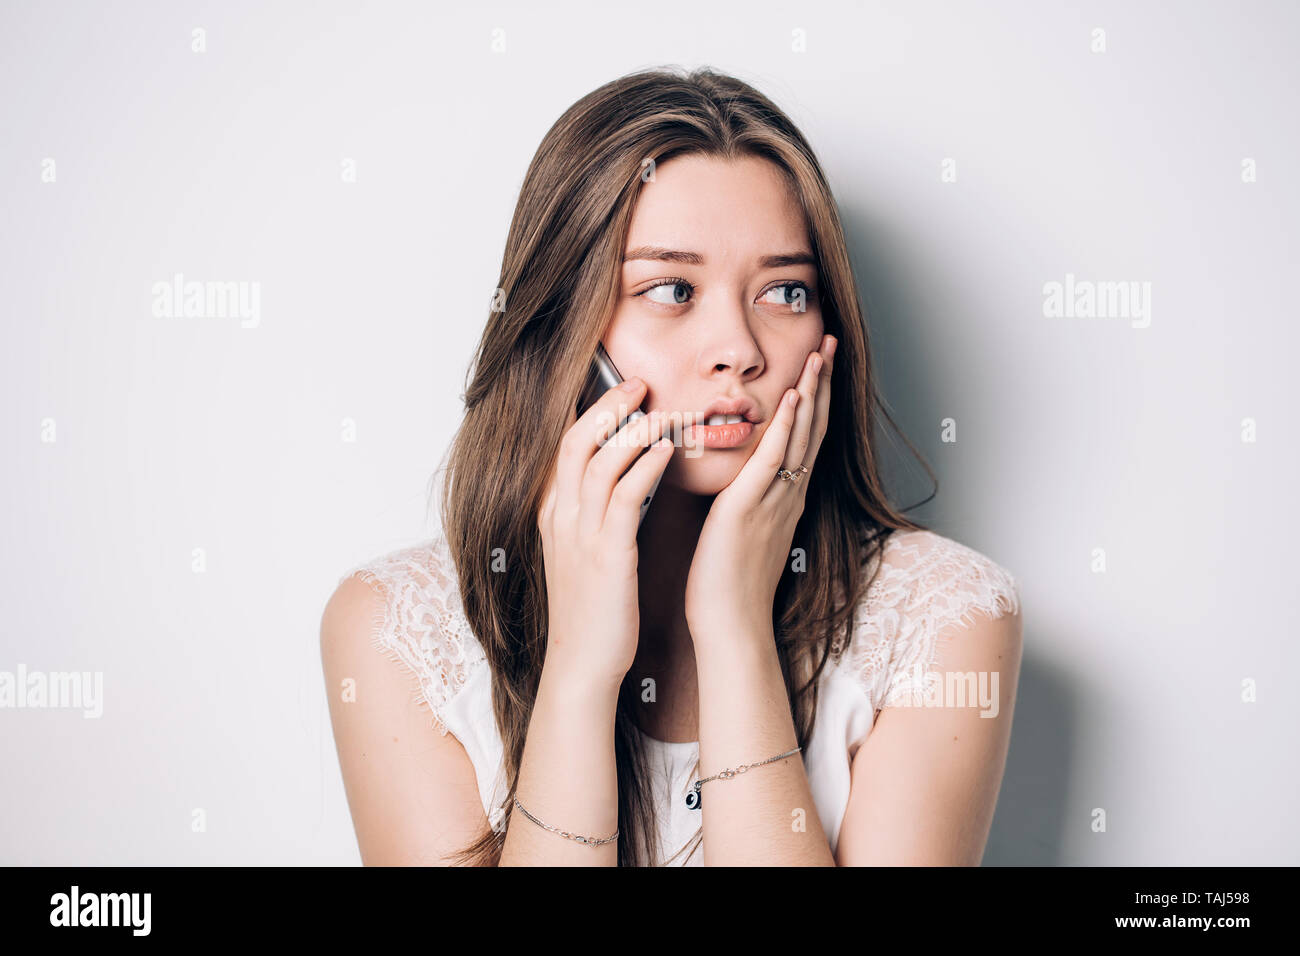 Sad young woman calling the doctor on the phone for a consultation on a white background. Toothache, health concept - Stock Image